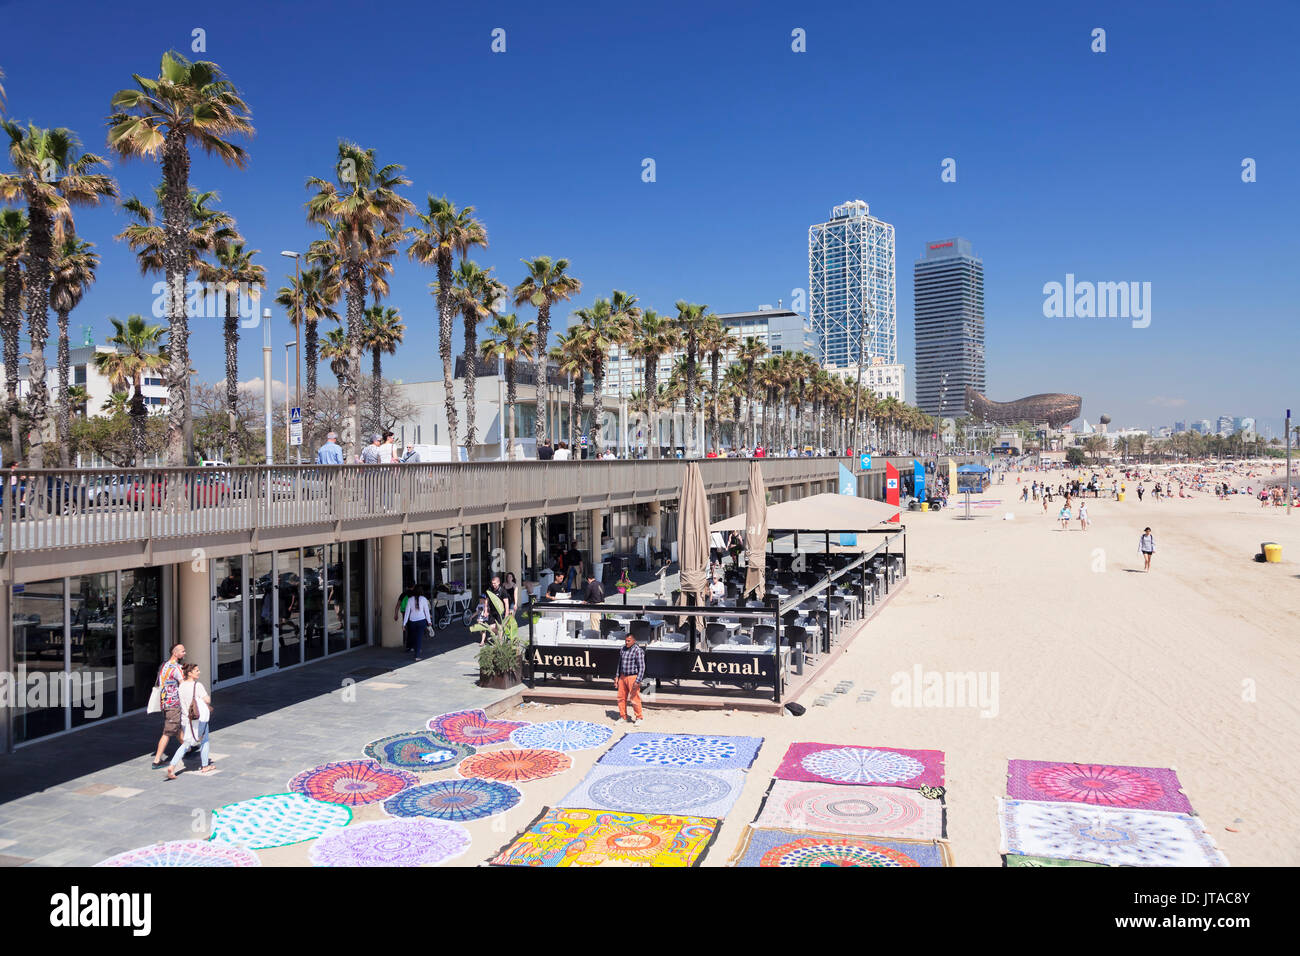 Barceloneta Beach, Port Olimpic, Mapfre Tower, Arts Tower, Peix, Fish sculpture by Frank Owen Gehry, Barcelona, - Stock Image